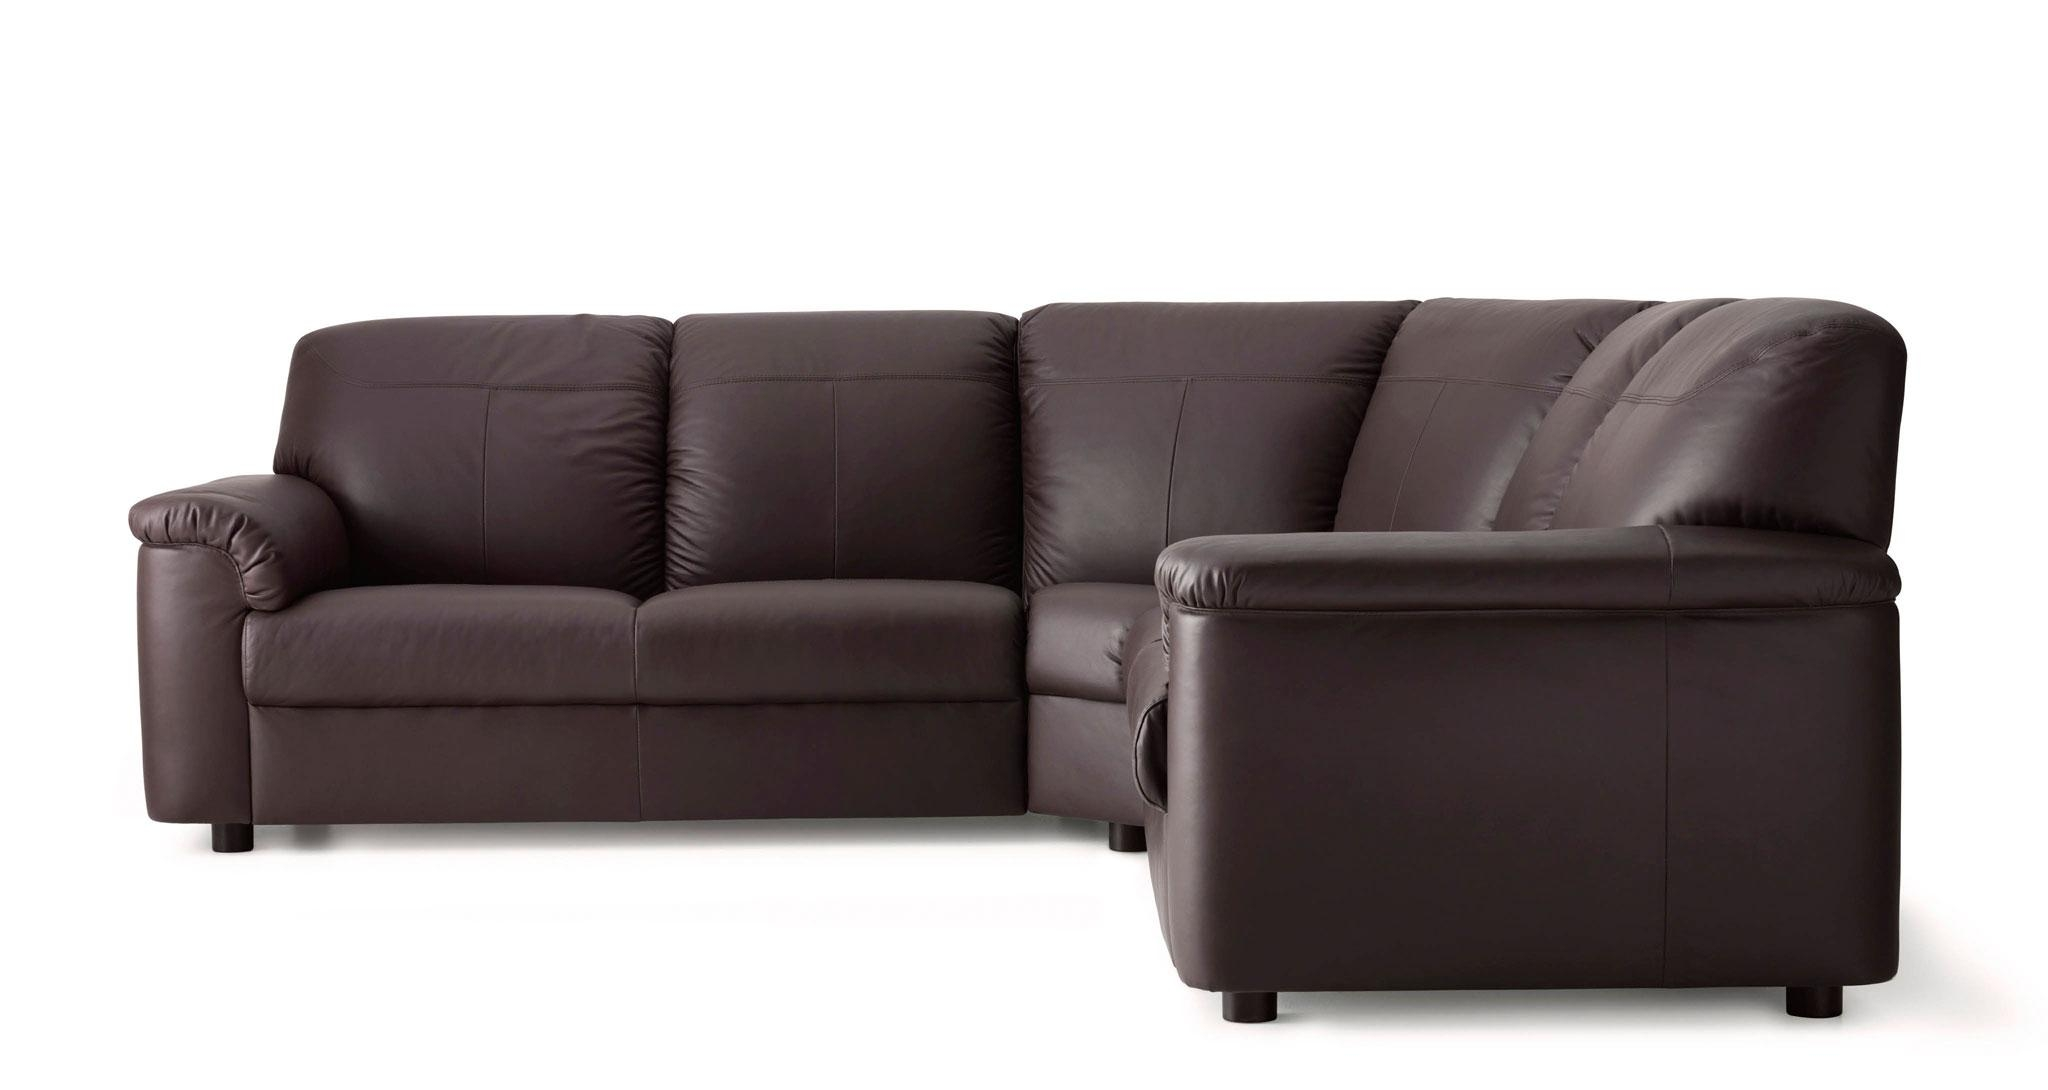 Leather & Coated Fabric Corner Sofas | Ikea Throughout Small Brown Leather Corner Sofas (Image 14 of 21)